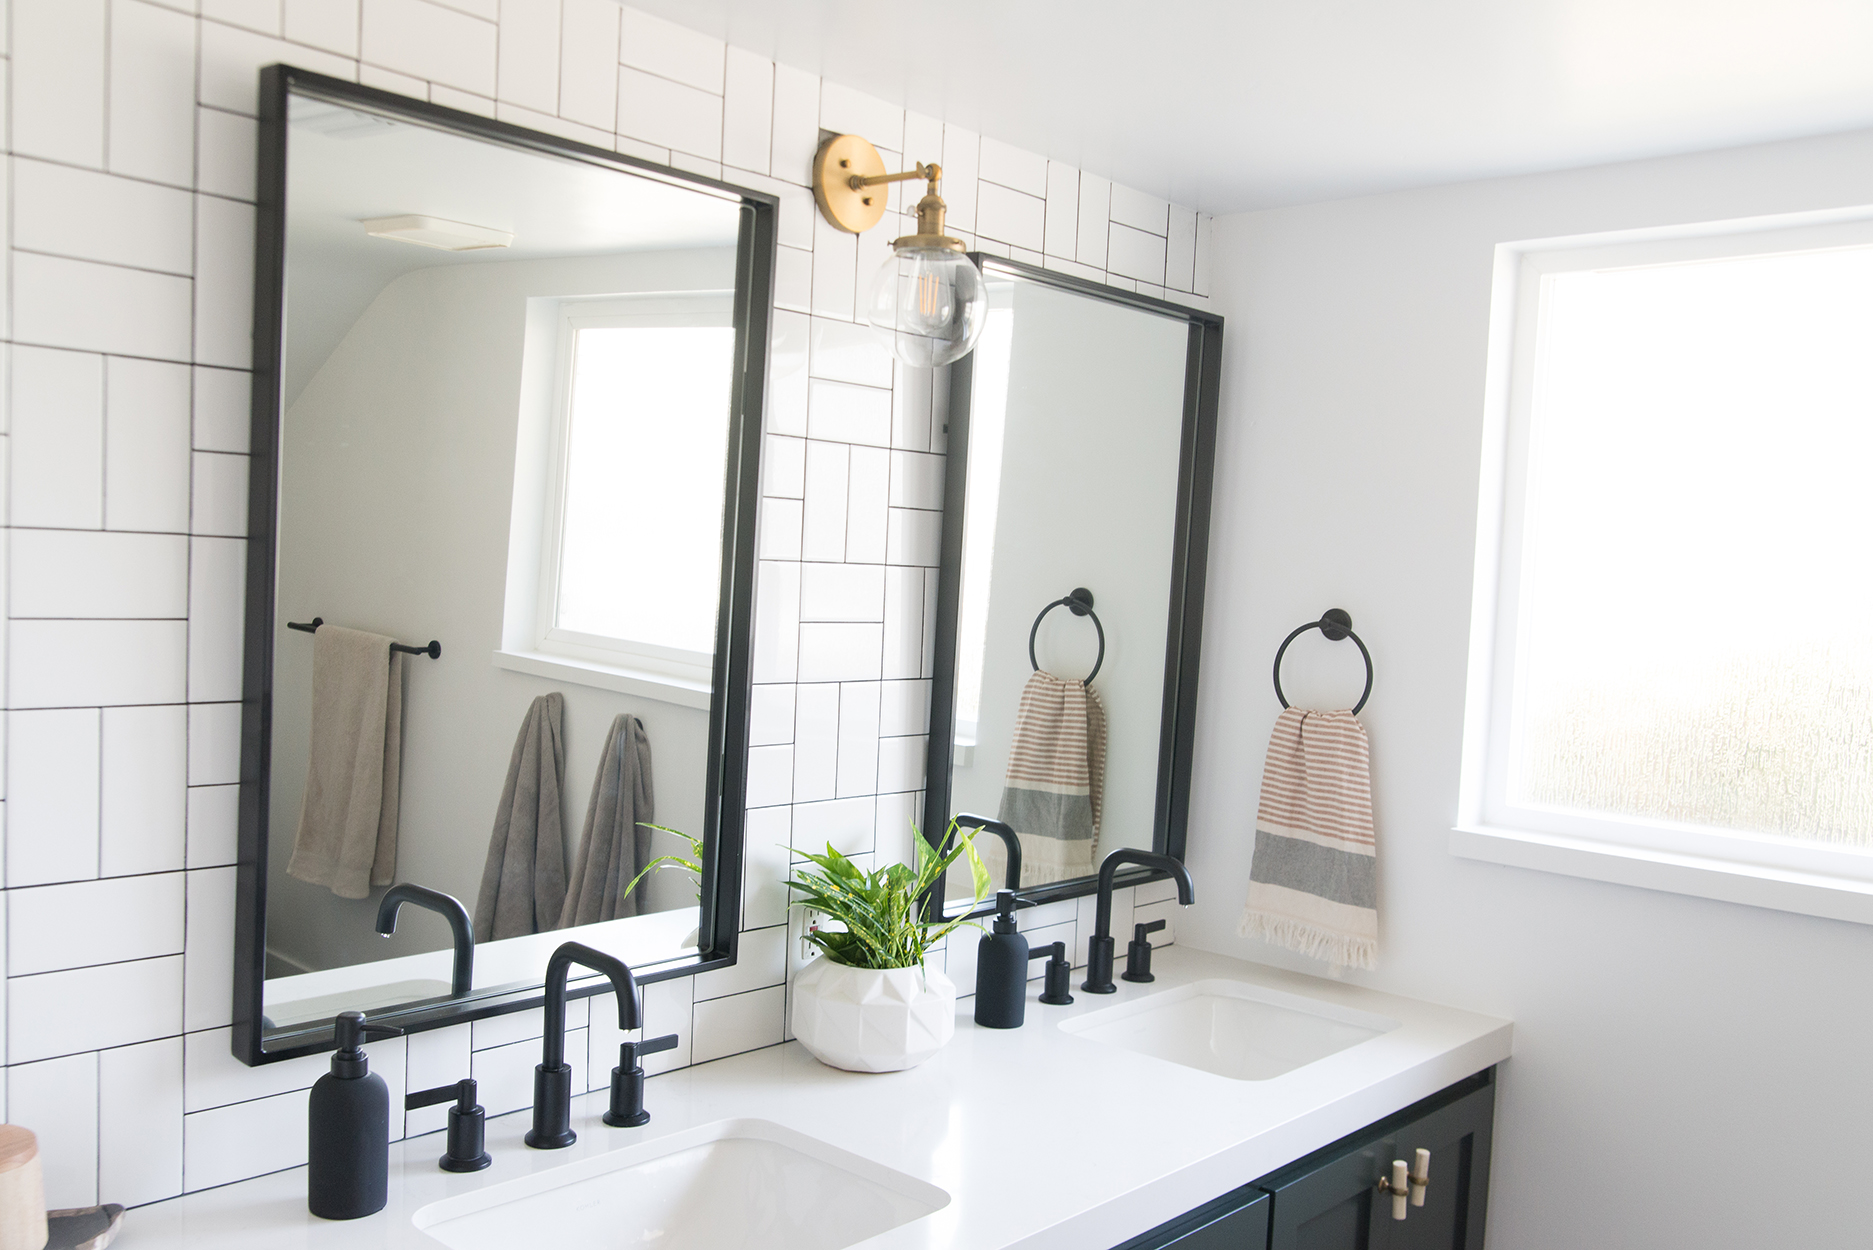 Bathroom mirrors with a white vanity counter top and black fixtures